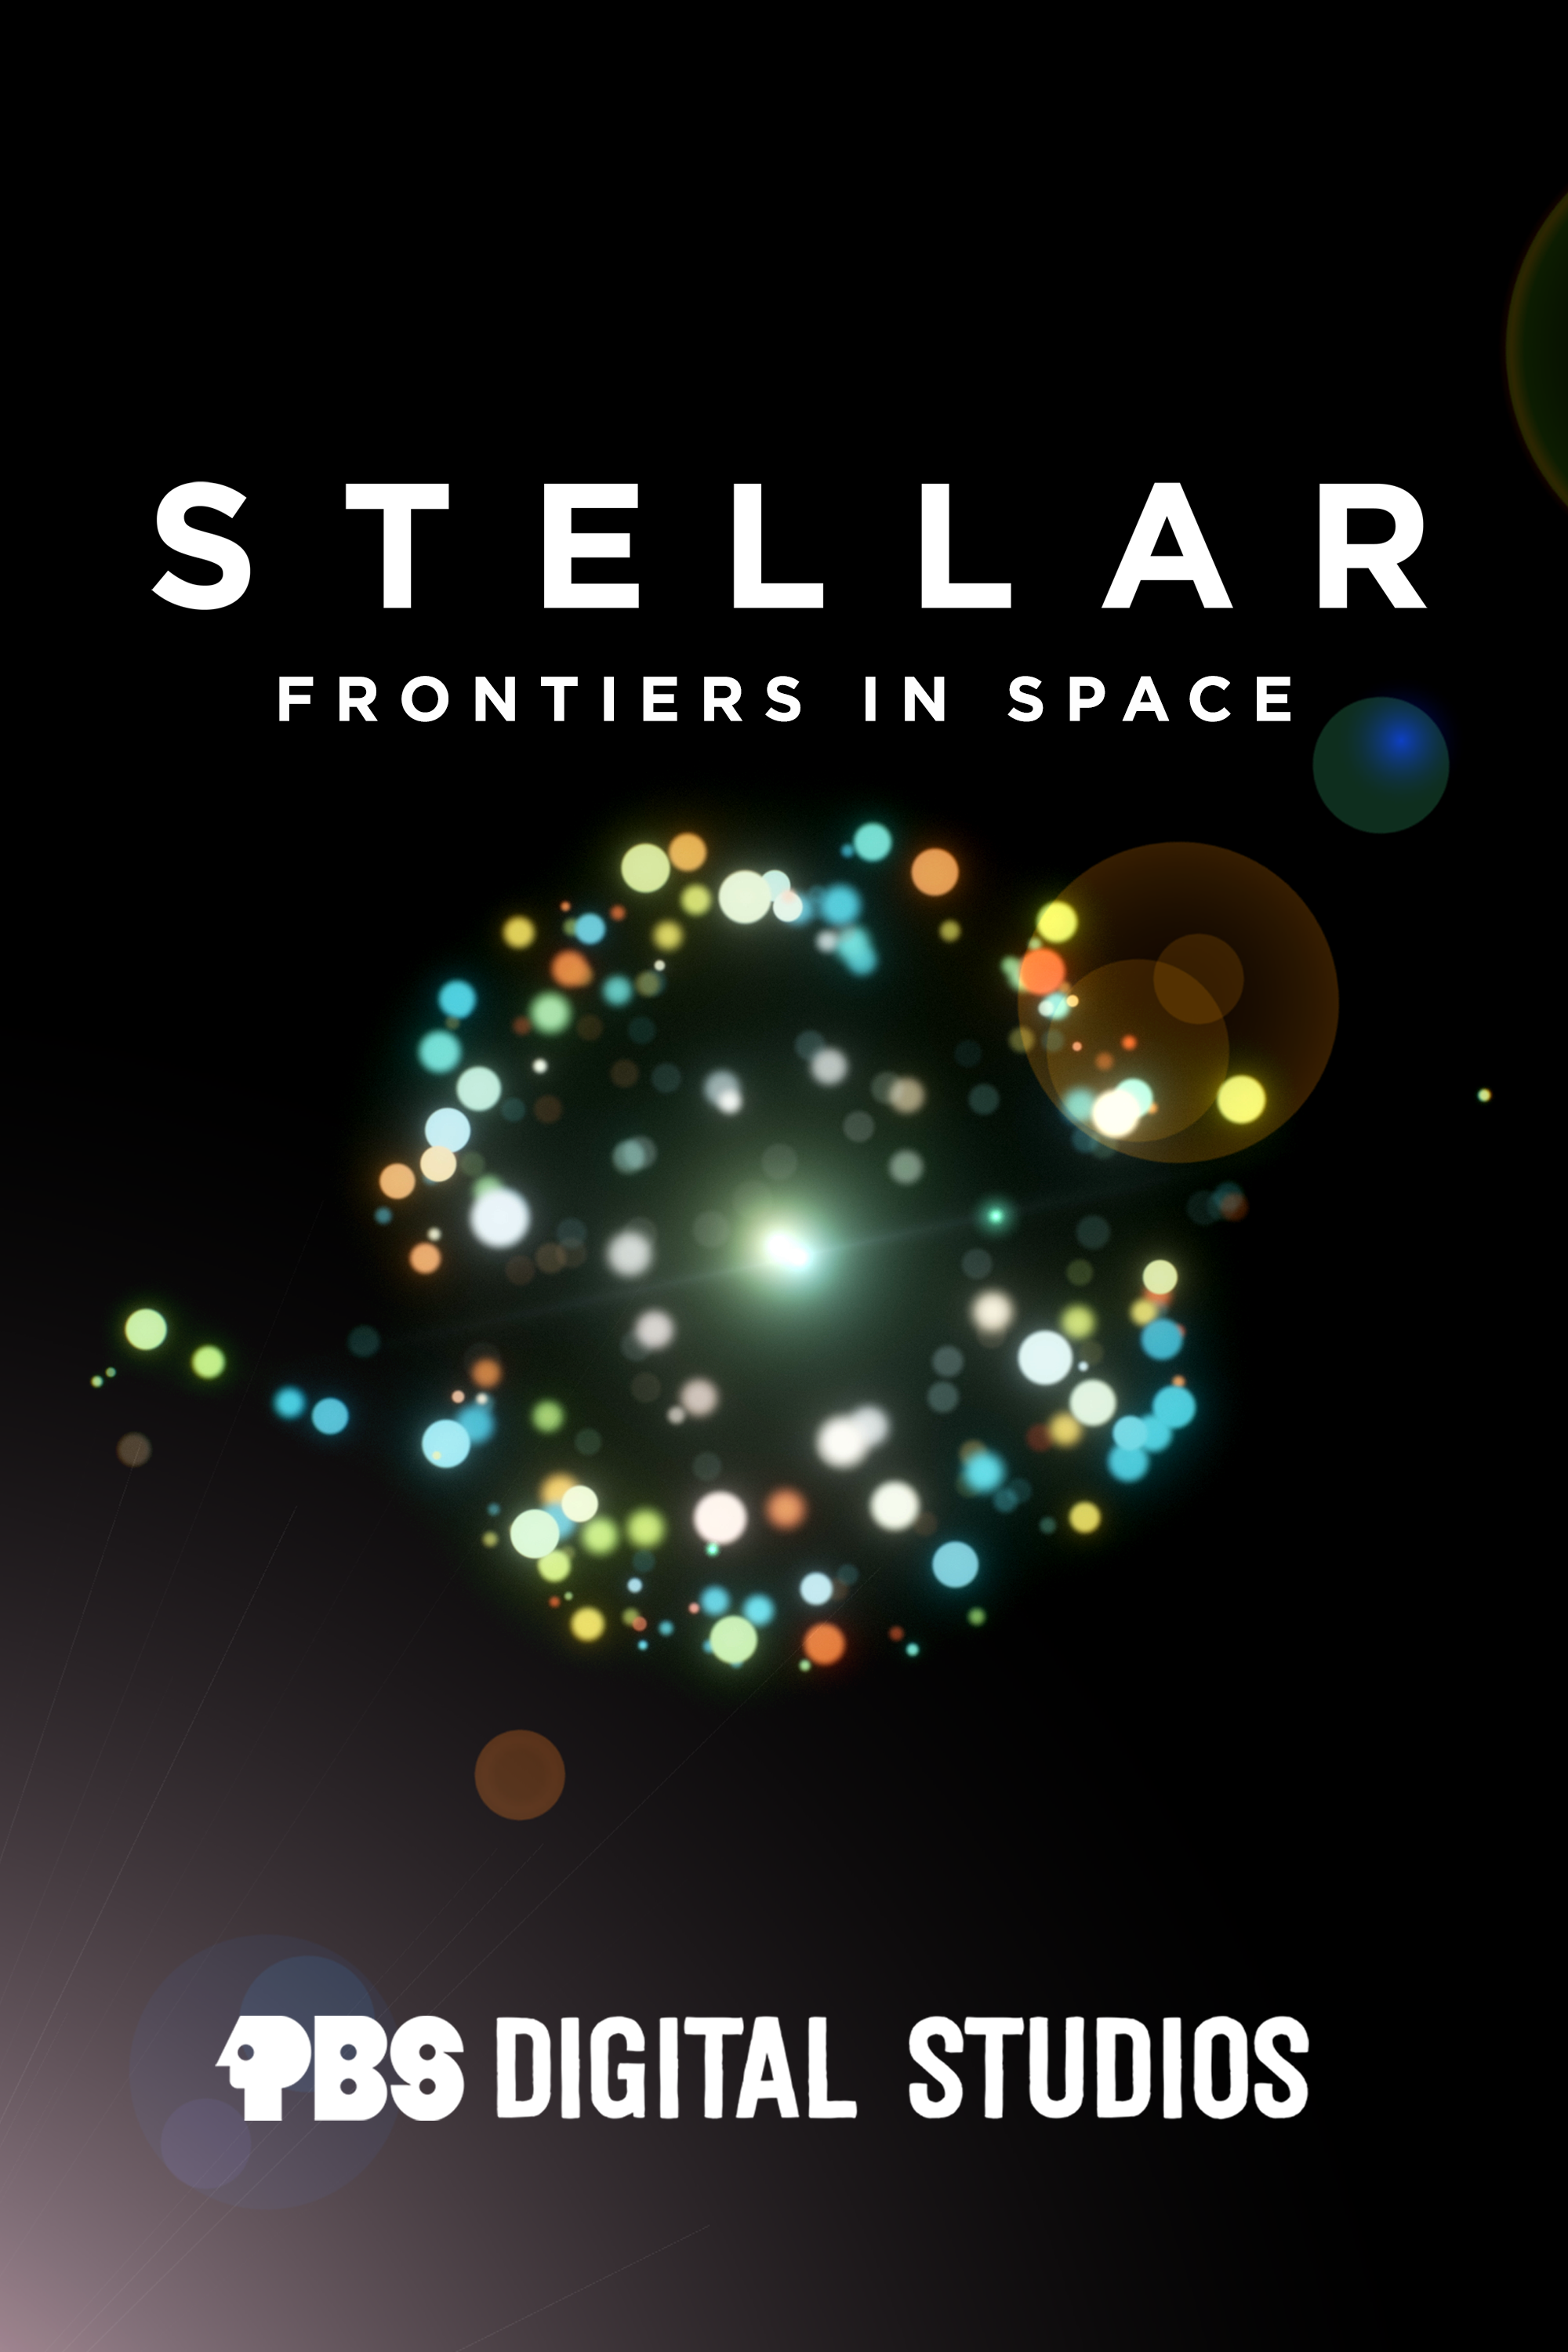 Stellar by PBS Digital Studios